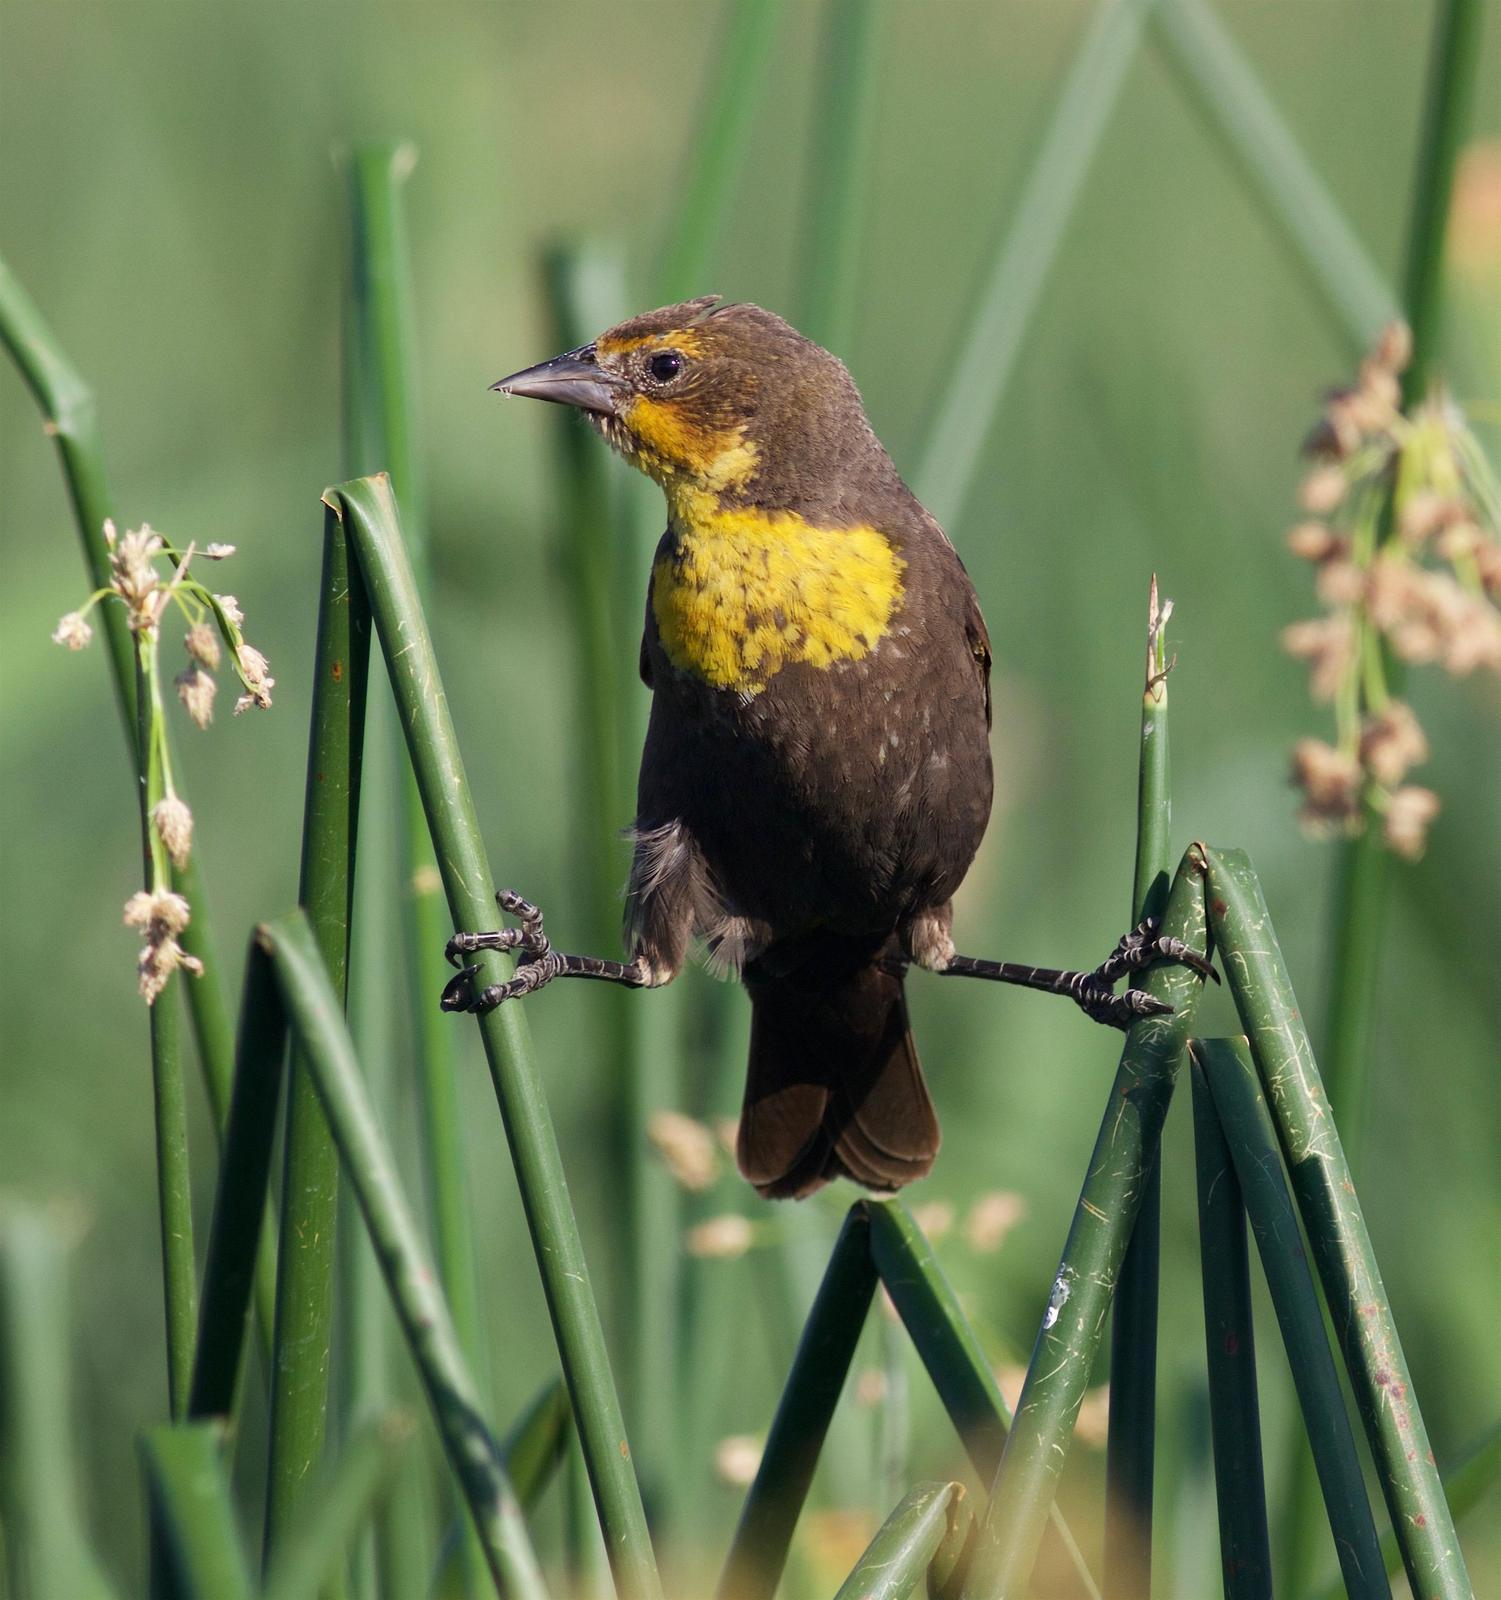 Yellow-headed Blackbird Photo by Kathryn Keith